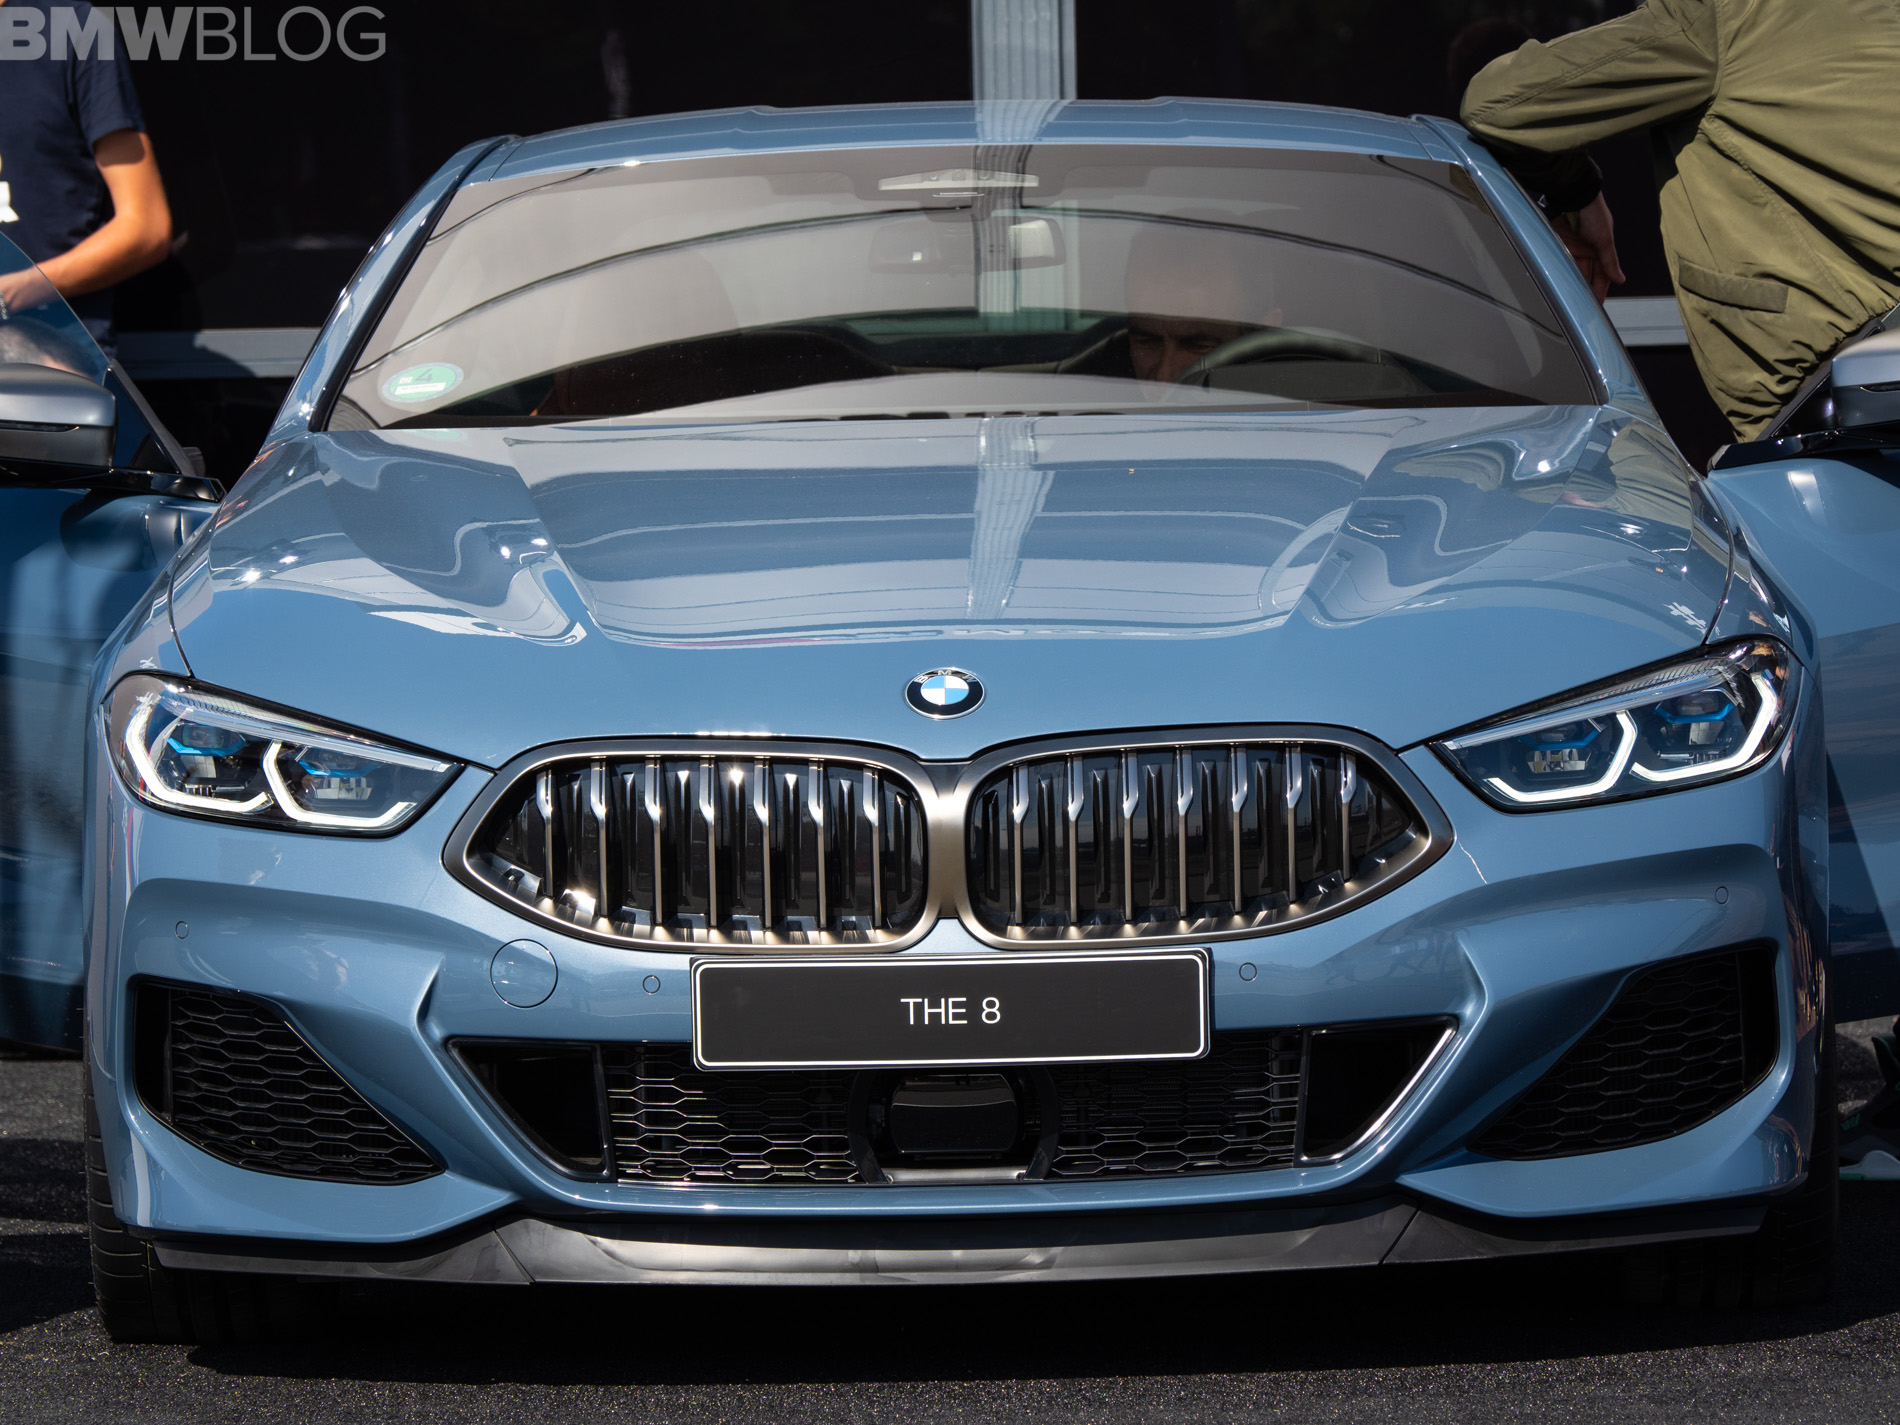 Germany Bmw M850i Xdrive Priced At 125700 Euros 840d At 100000 Euros